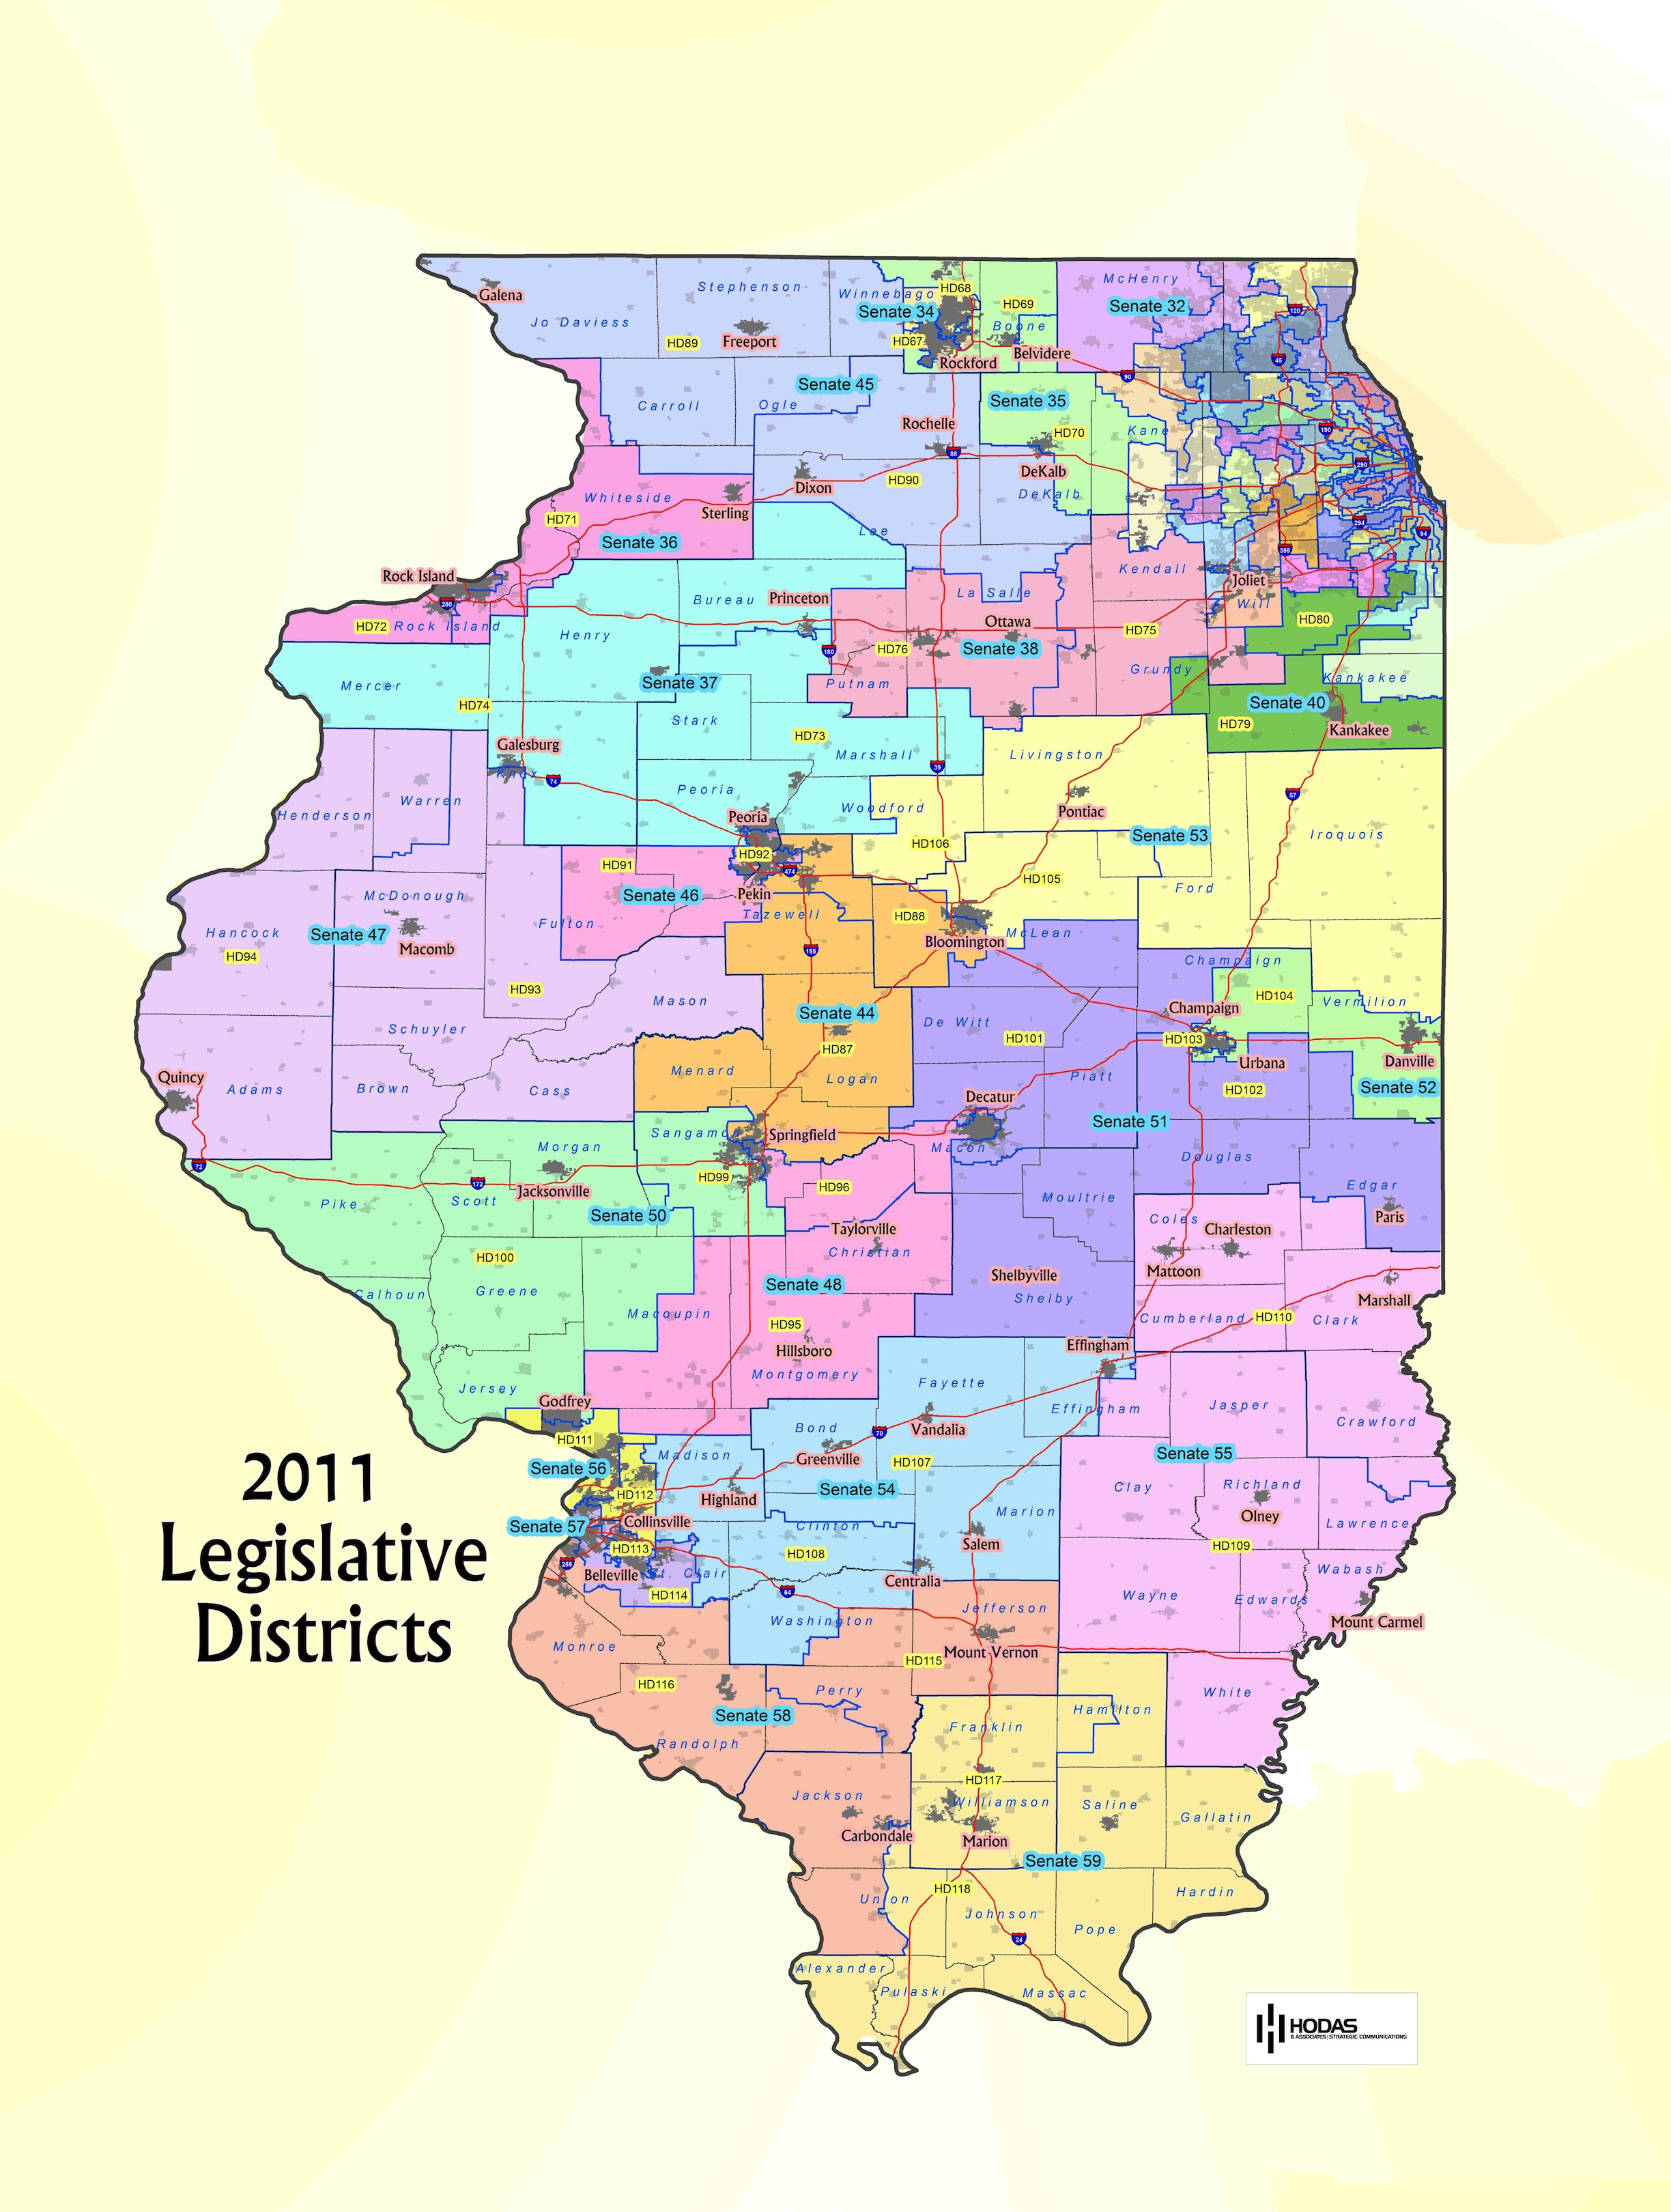 New Illinois Legislative Maps - Hodas and ociates on illinois state representatives by zip code, illinois state representative map, illinois appellate court map, illinois district map, illinois community college map, illinois political map, illinois zip code map, illinois state legislative map, illinois state senators map, new york state assembly map, antioch ca map, illinois circuit court map, illinois senate district boundaries, illinois court of appeals map, illinois city map, illinois state election map, illinois state legislature, illinois county map, illinois us house of representatives map,